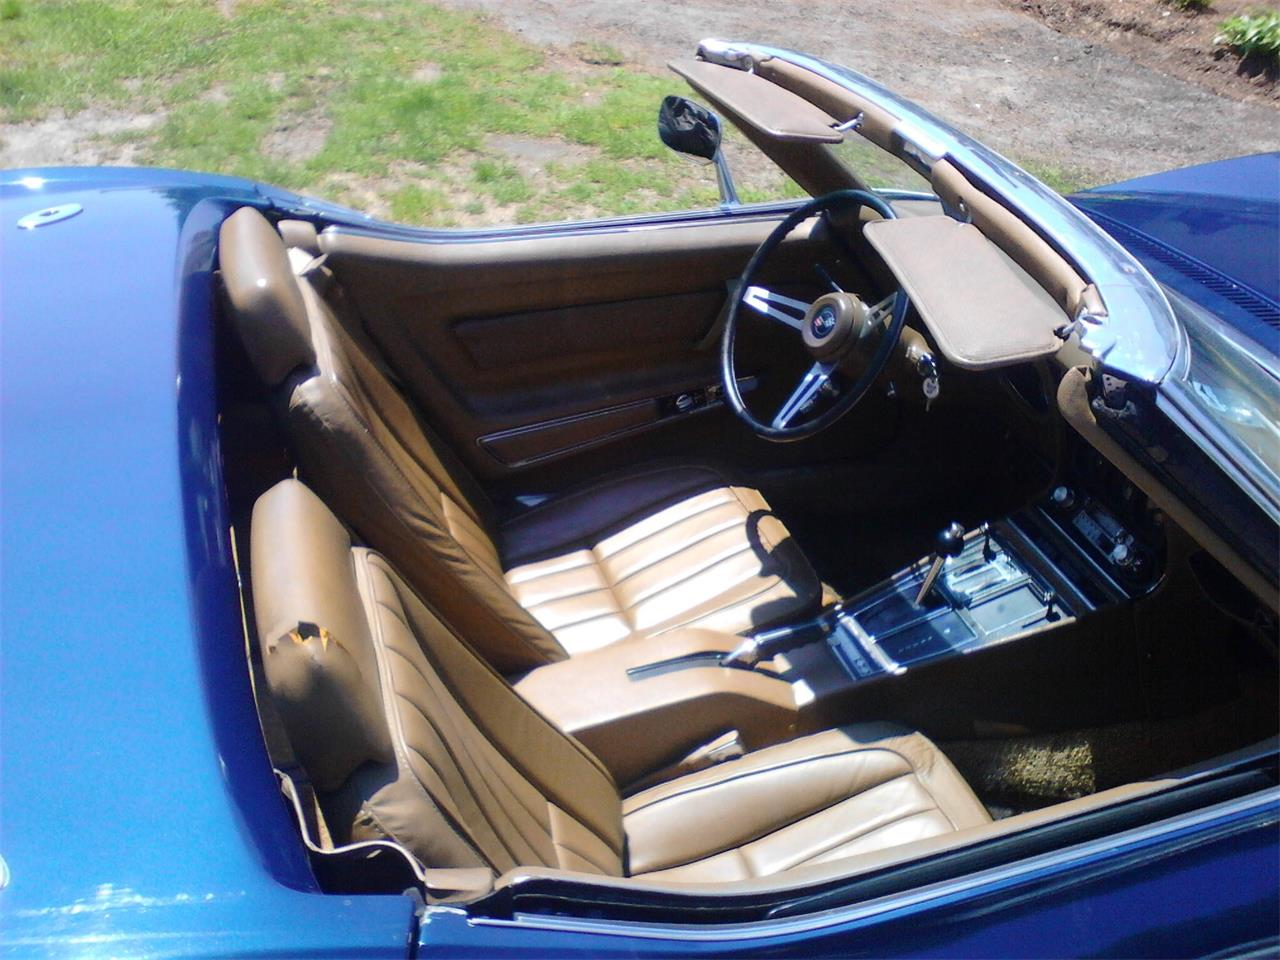 Large Picture of Classic 1969 Chevrolet Corvette located in Warwick Rhode Island - $32,000.00 - LZ4V